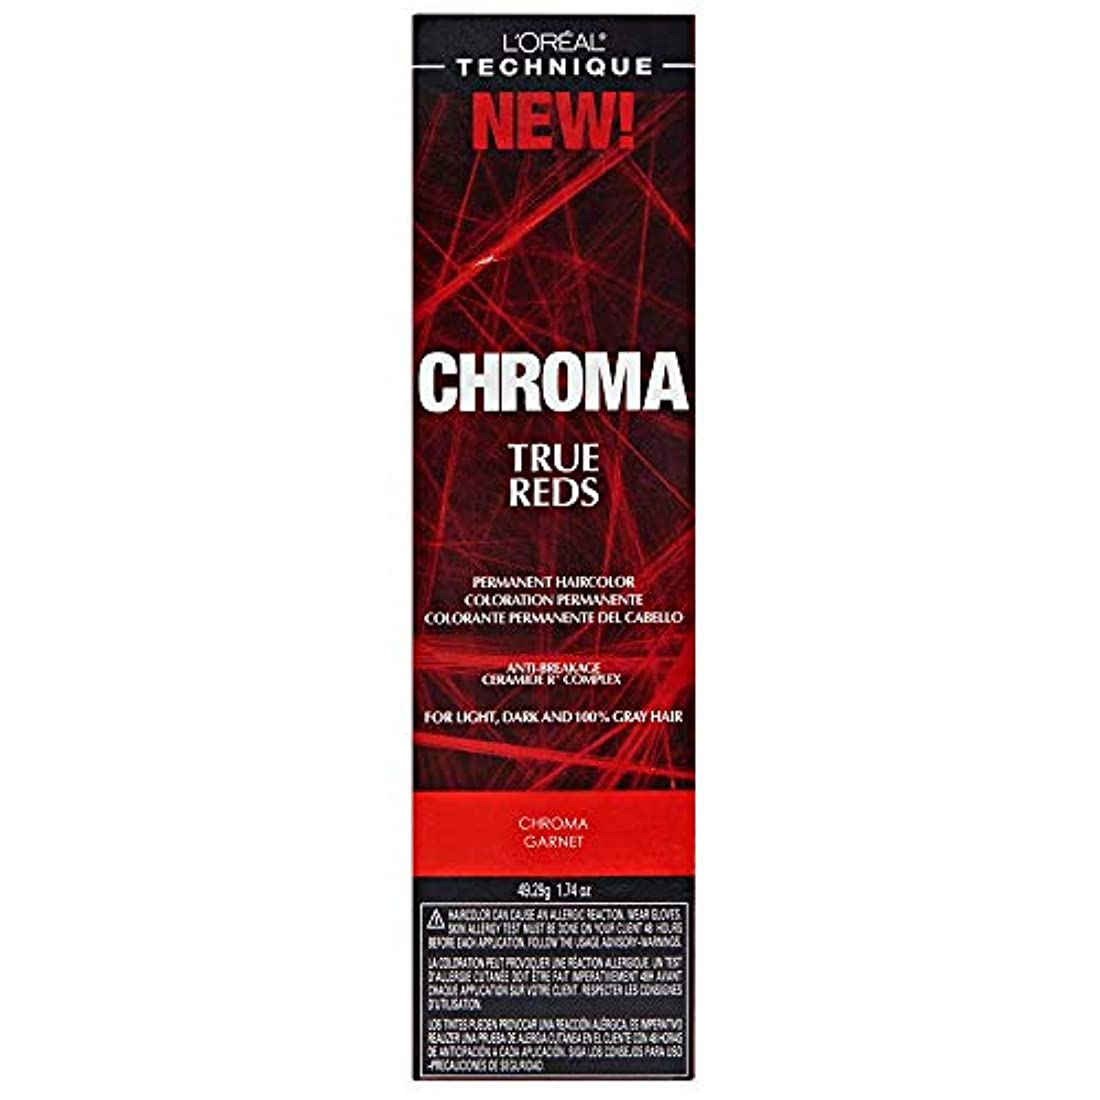 統計収入黒板L'Oreal Technique Chroma True Reds - Chroma Garnet - 1.74oz / 49.29g